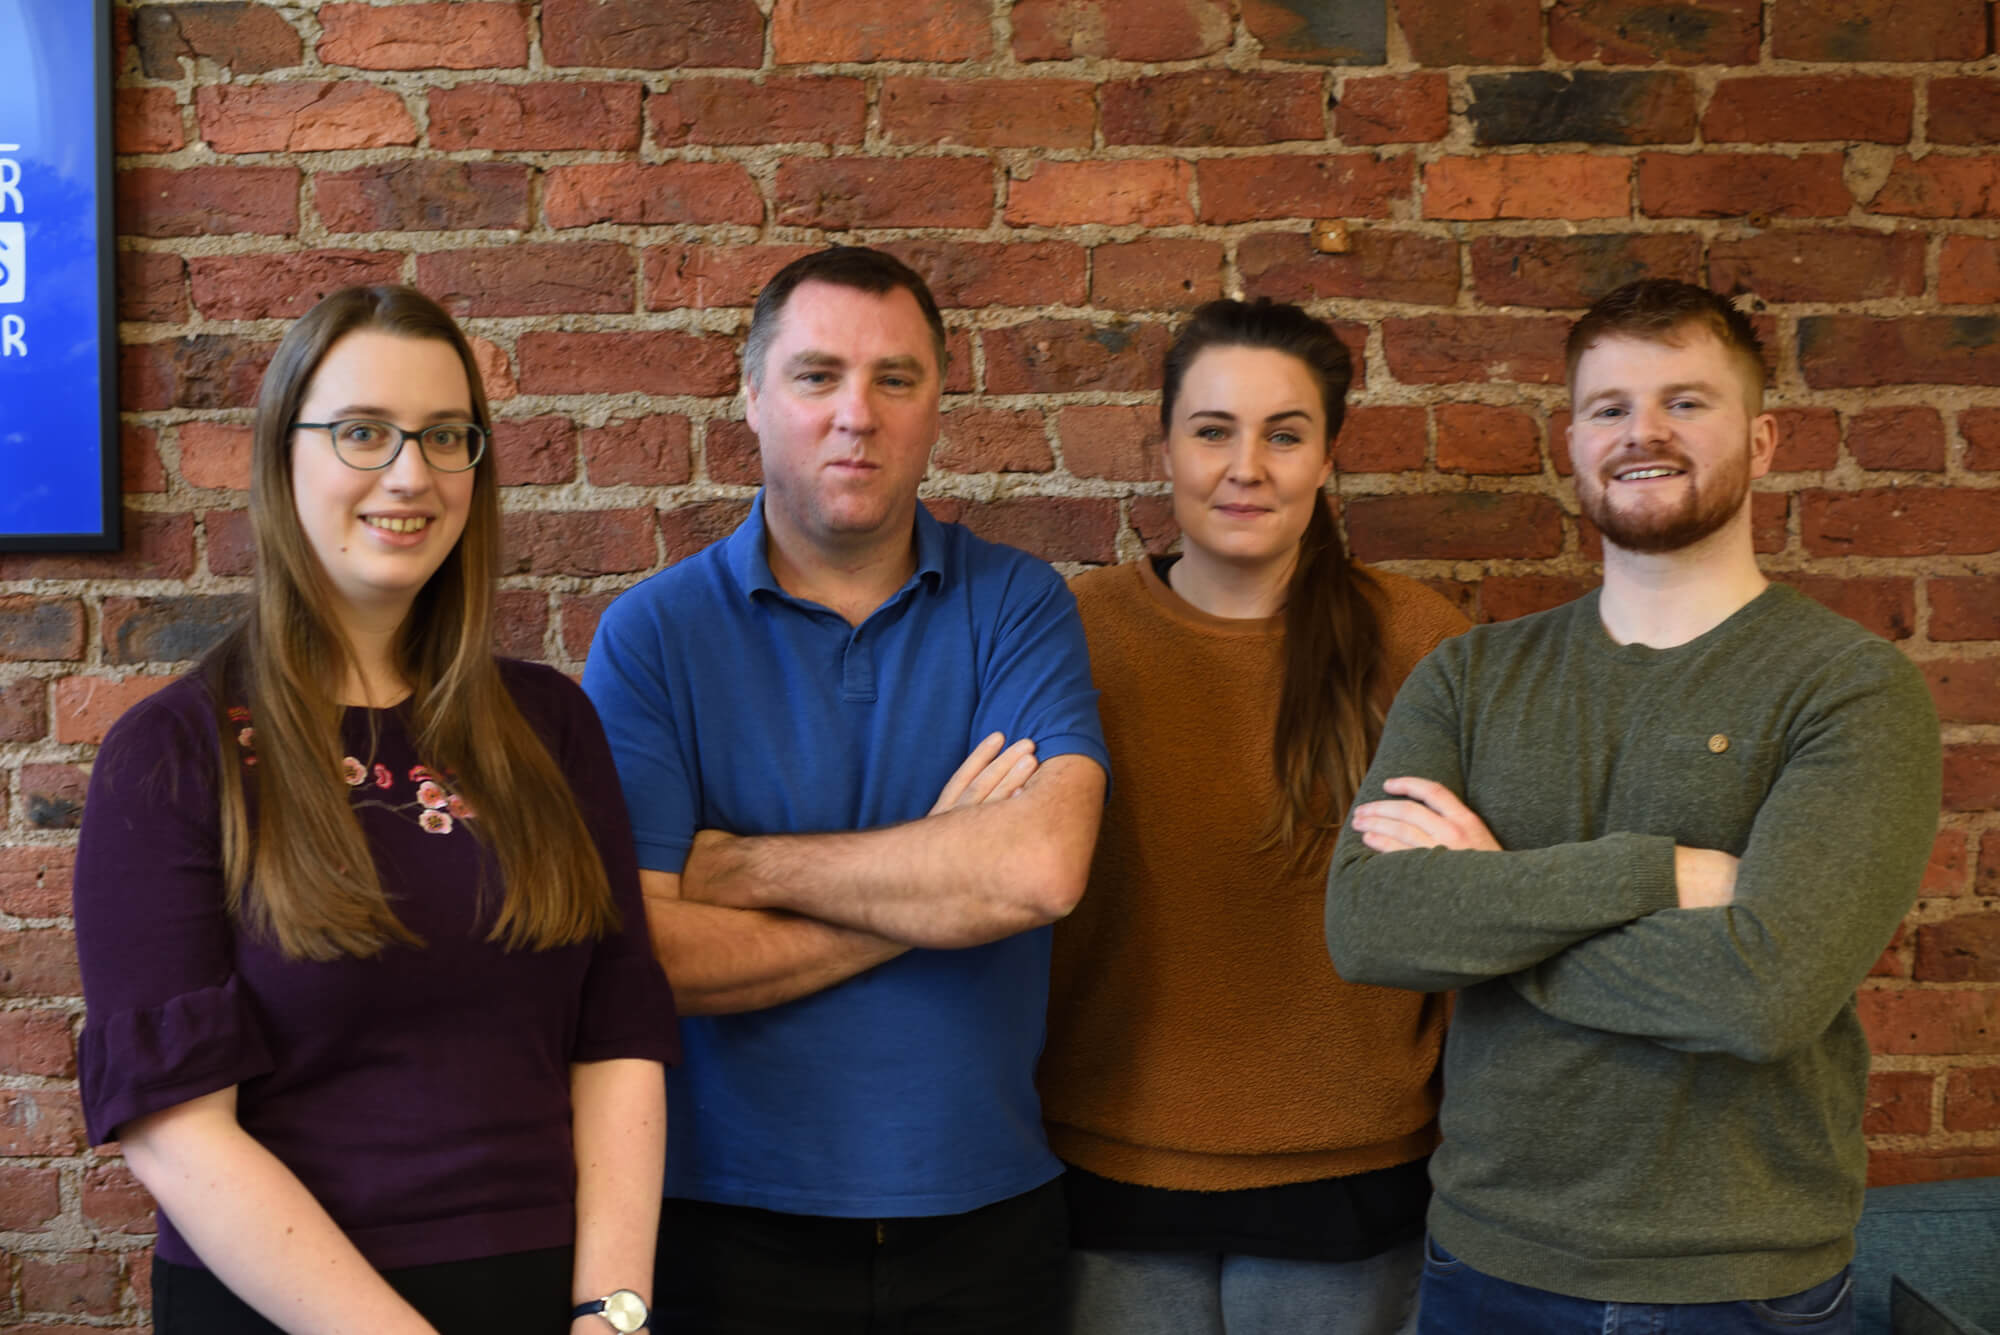 Fantastic four: Bevy of new faces join the RotaCloud team